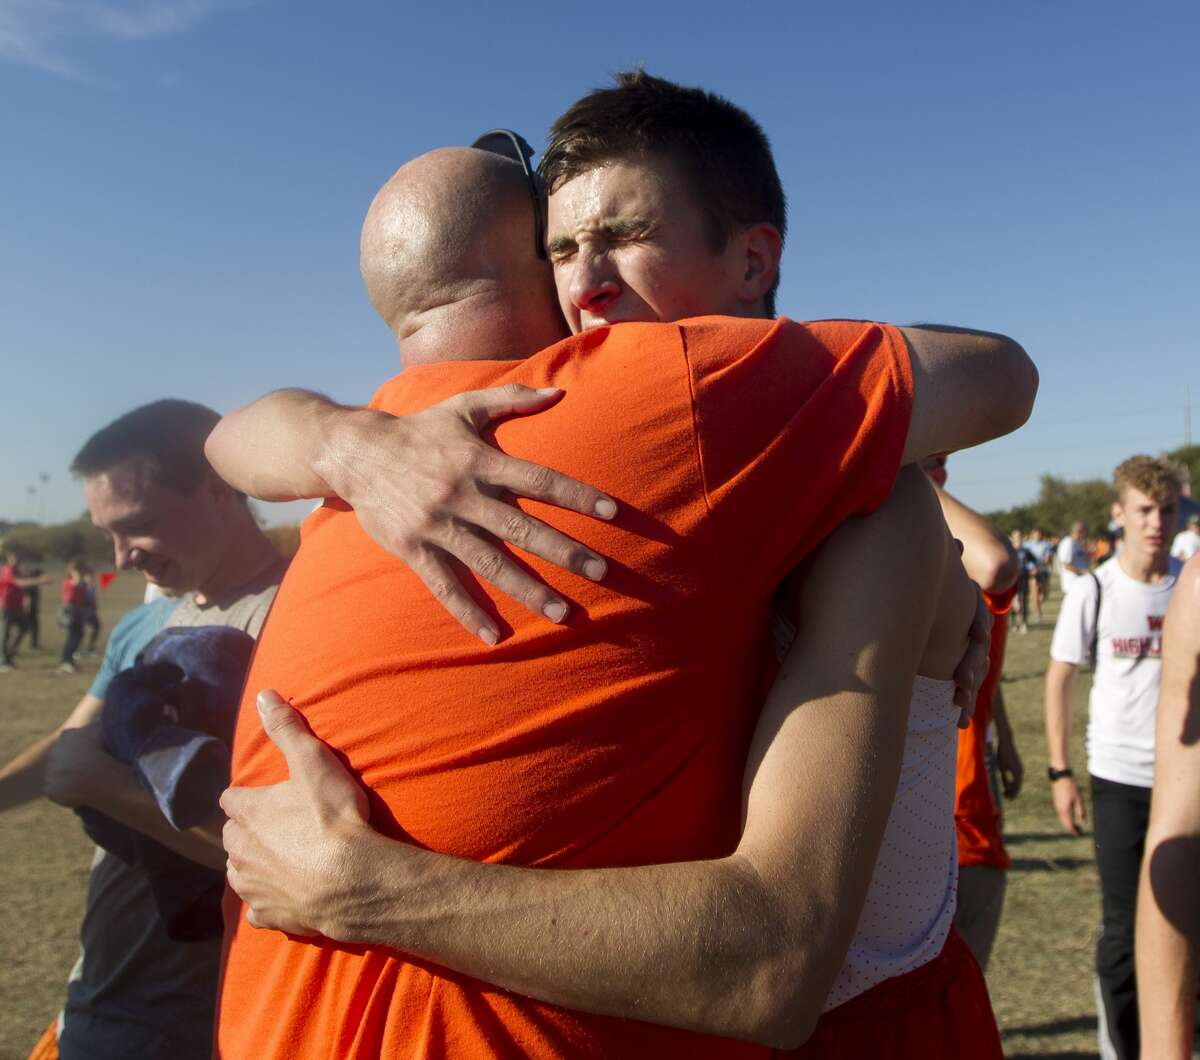 Ryan Schoppe of La Porte reacts after winning the Class 6A boys race during the UIL State Cross Country Championships at Old Settlers Park, Saturday, Nov. 9, 2019, in Round Rock. Schoppe broke the Class 6A record with his run in 14 minutes and 14.02 seconds.